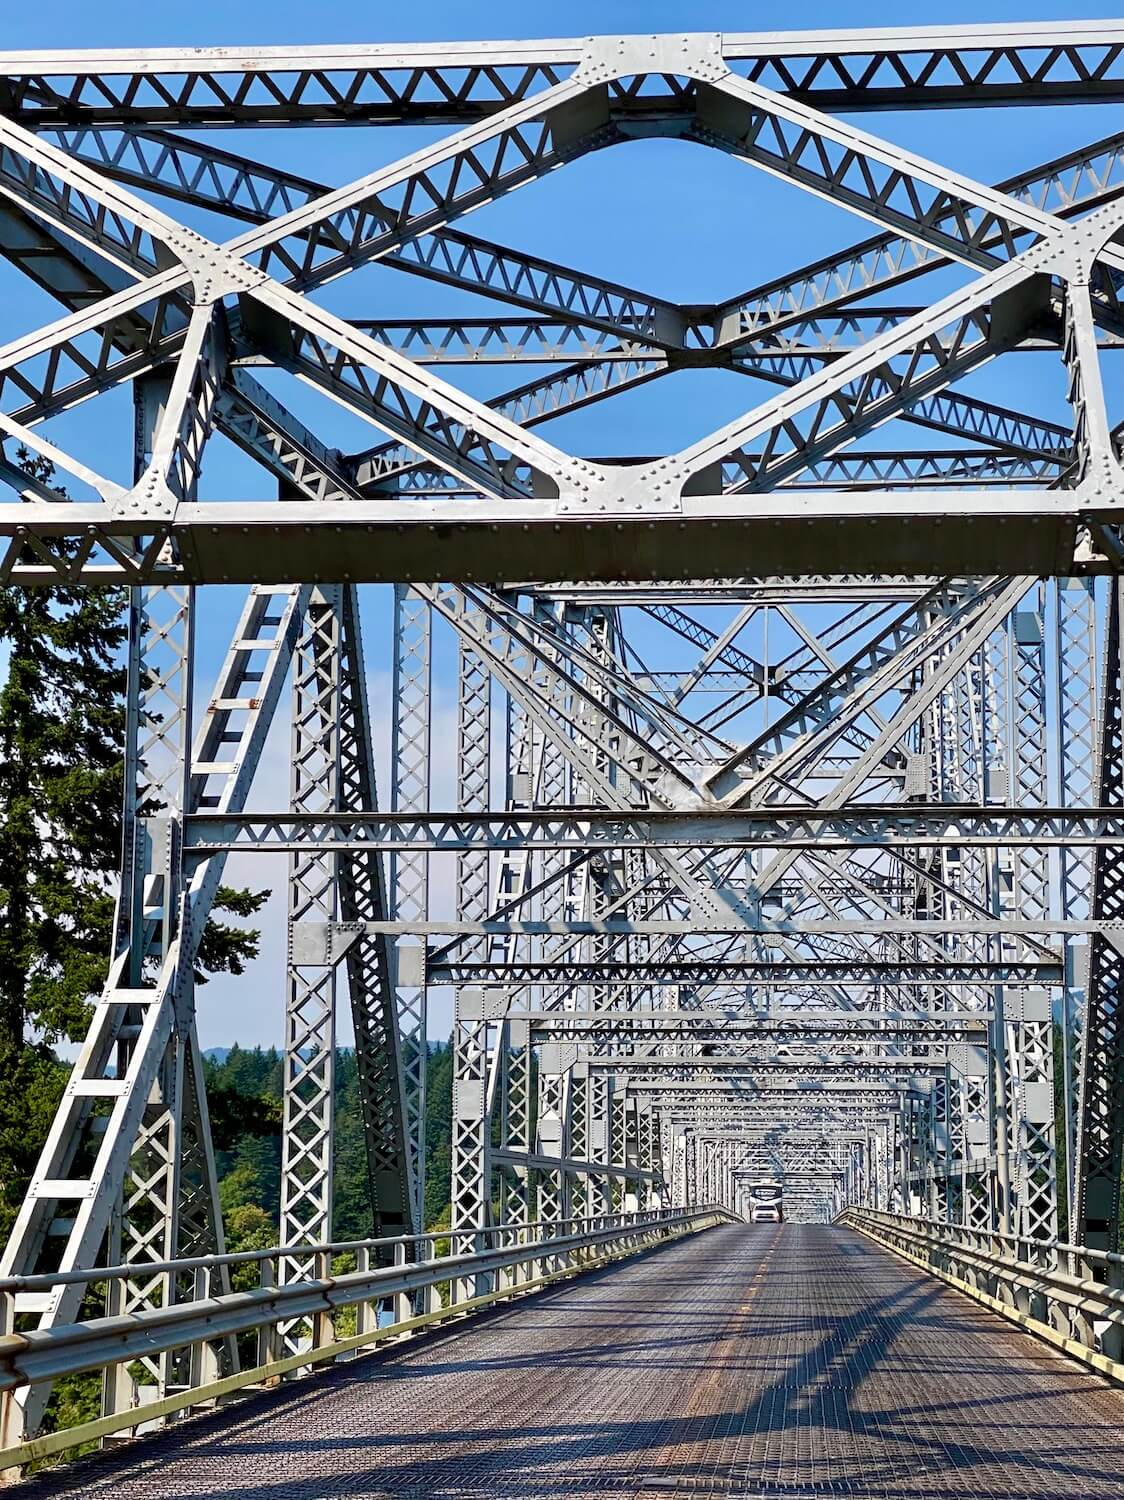 The metal structure of the bridge of the gods connects Cascade Locks, Oregon with Stevenson, Washington. This is the road trip itinerary to Spirit Lake on Mount St. Helens.